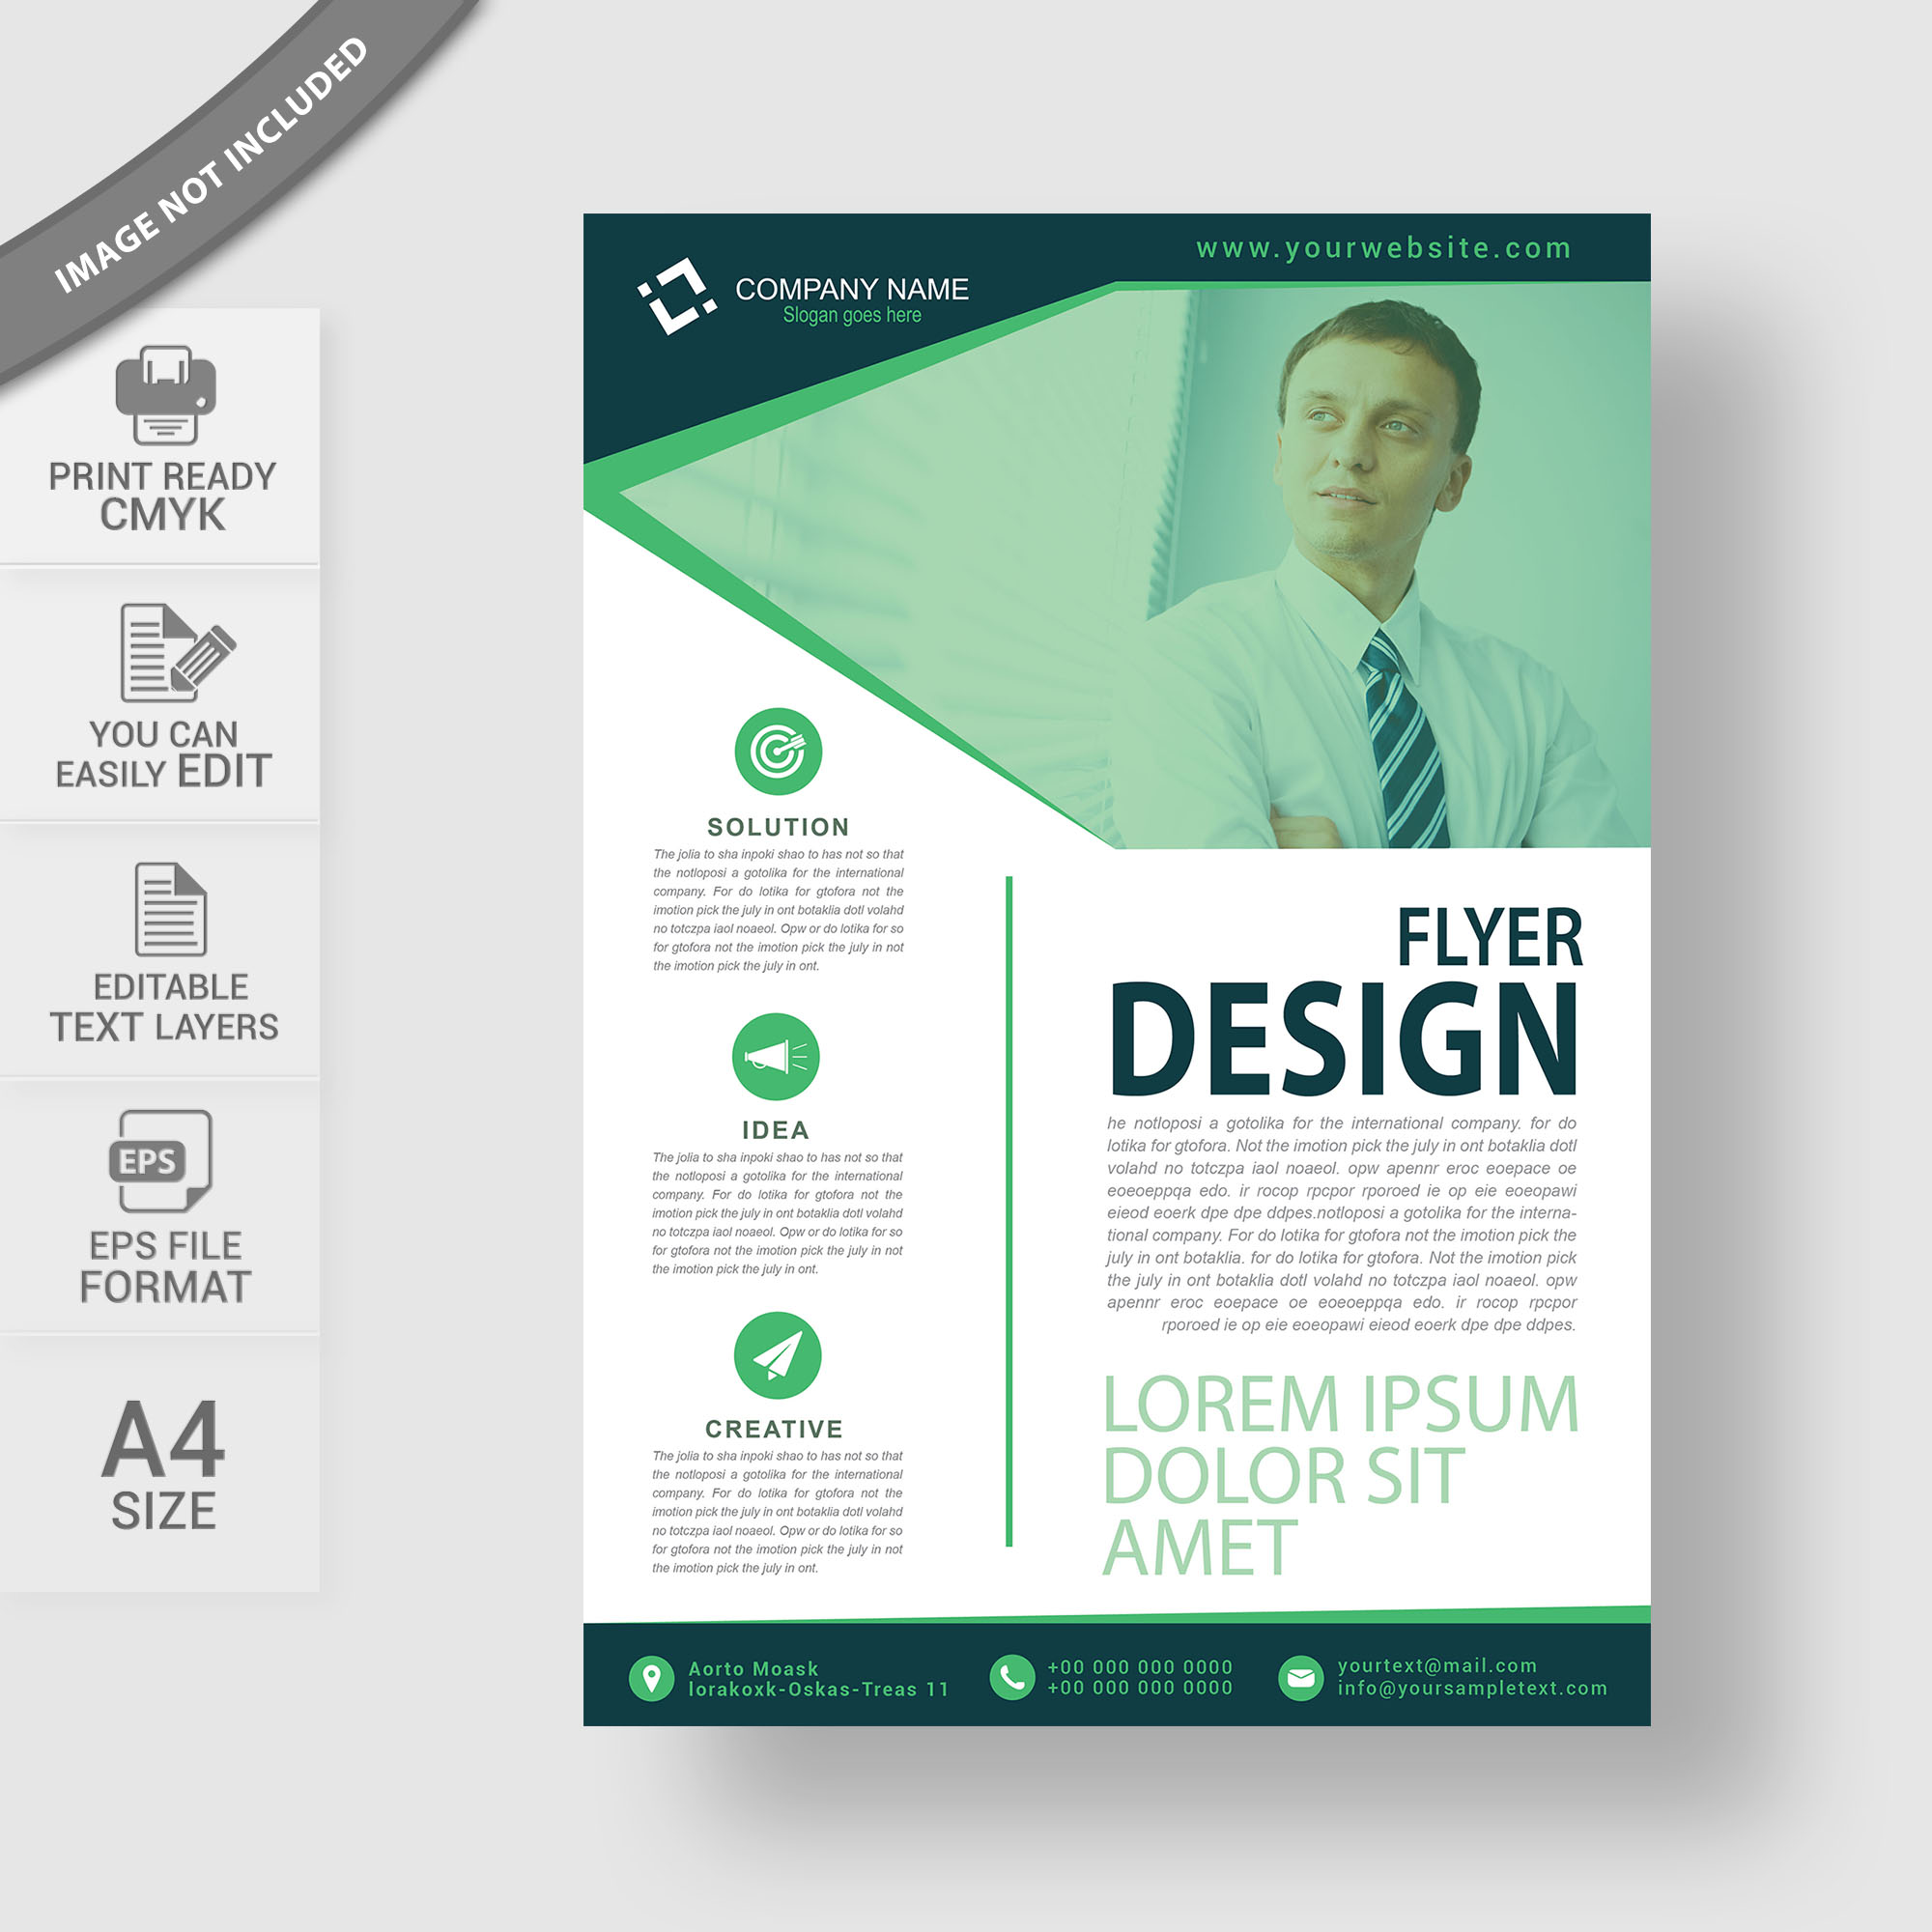 Professional business flyer design free download wisxi abstract business design modern presentation template company document friedricerecipe Images